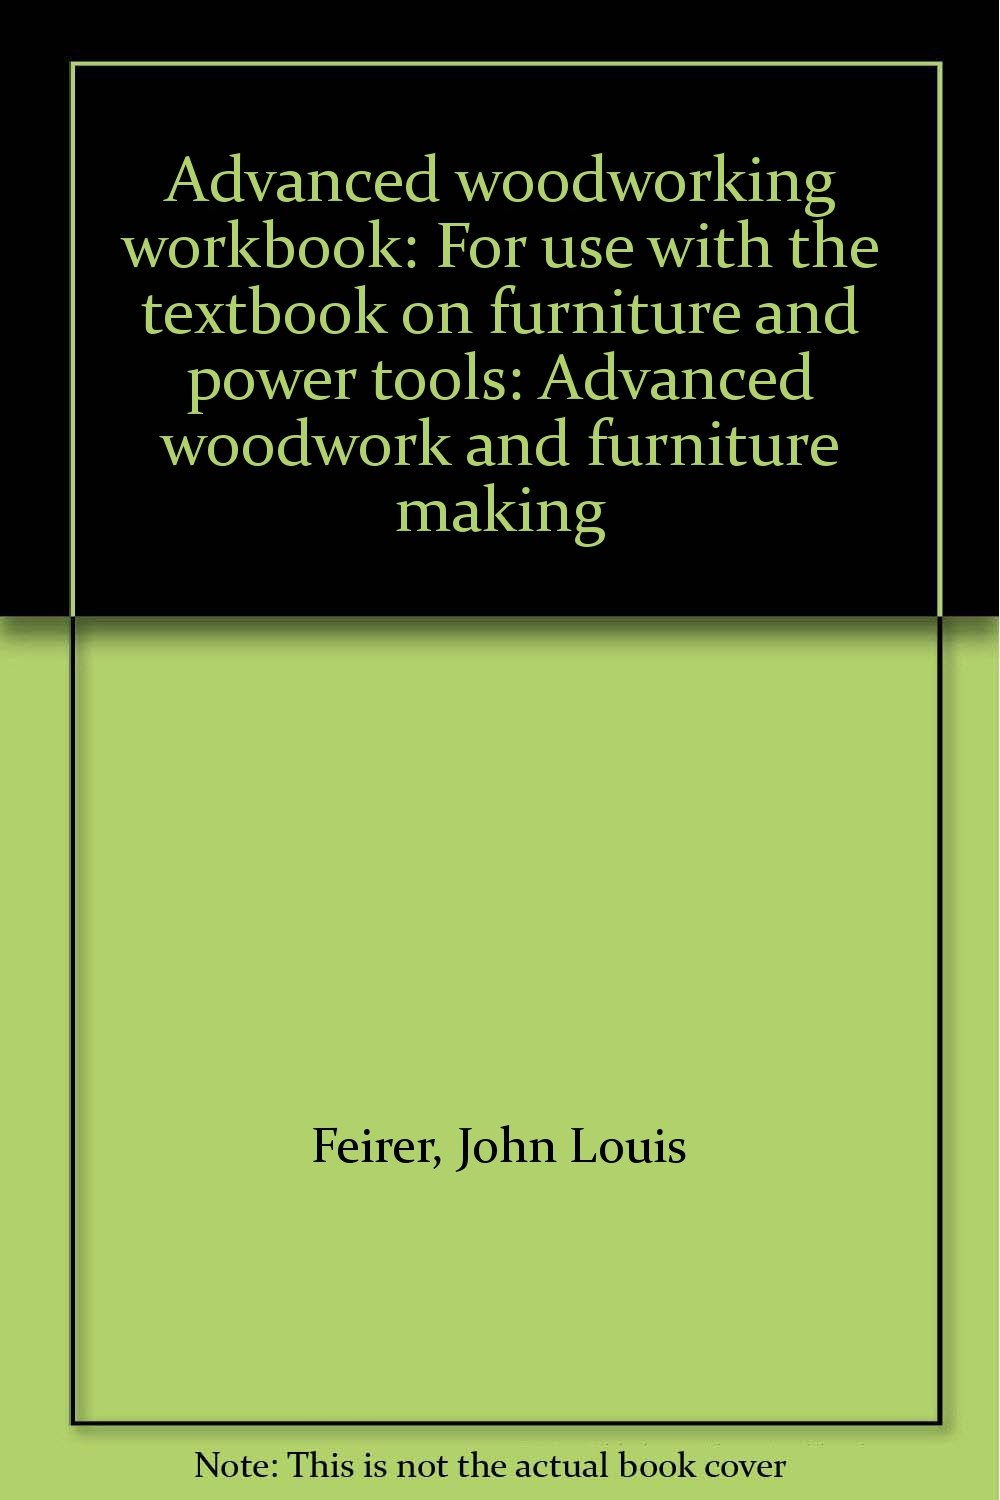 advanced-woodworking-workbook-for-use-with-the-textbook-on-furniture-and-power-tools-advanced-woodwork-and-furniture-making